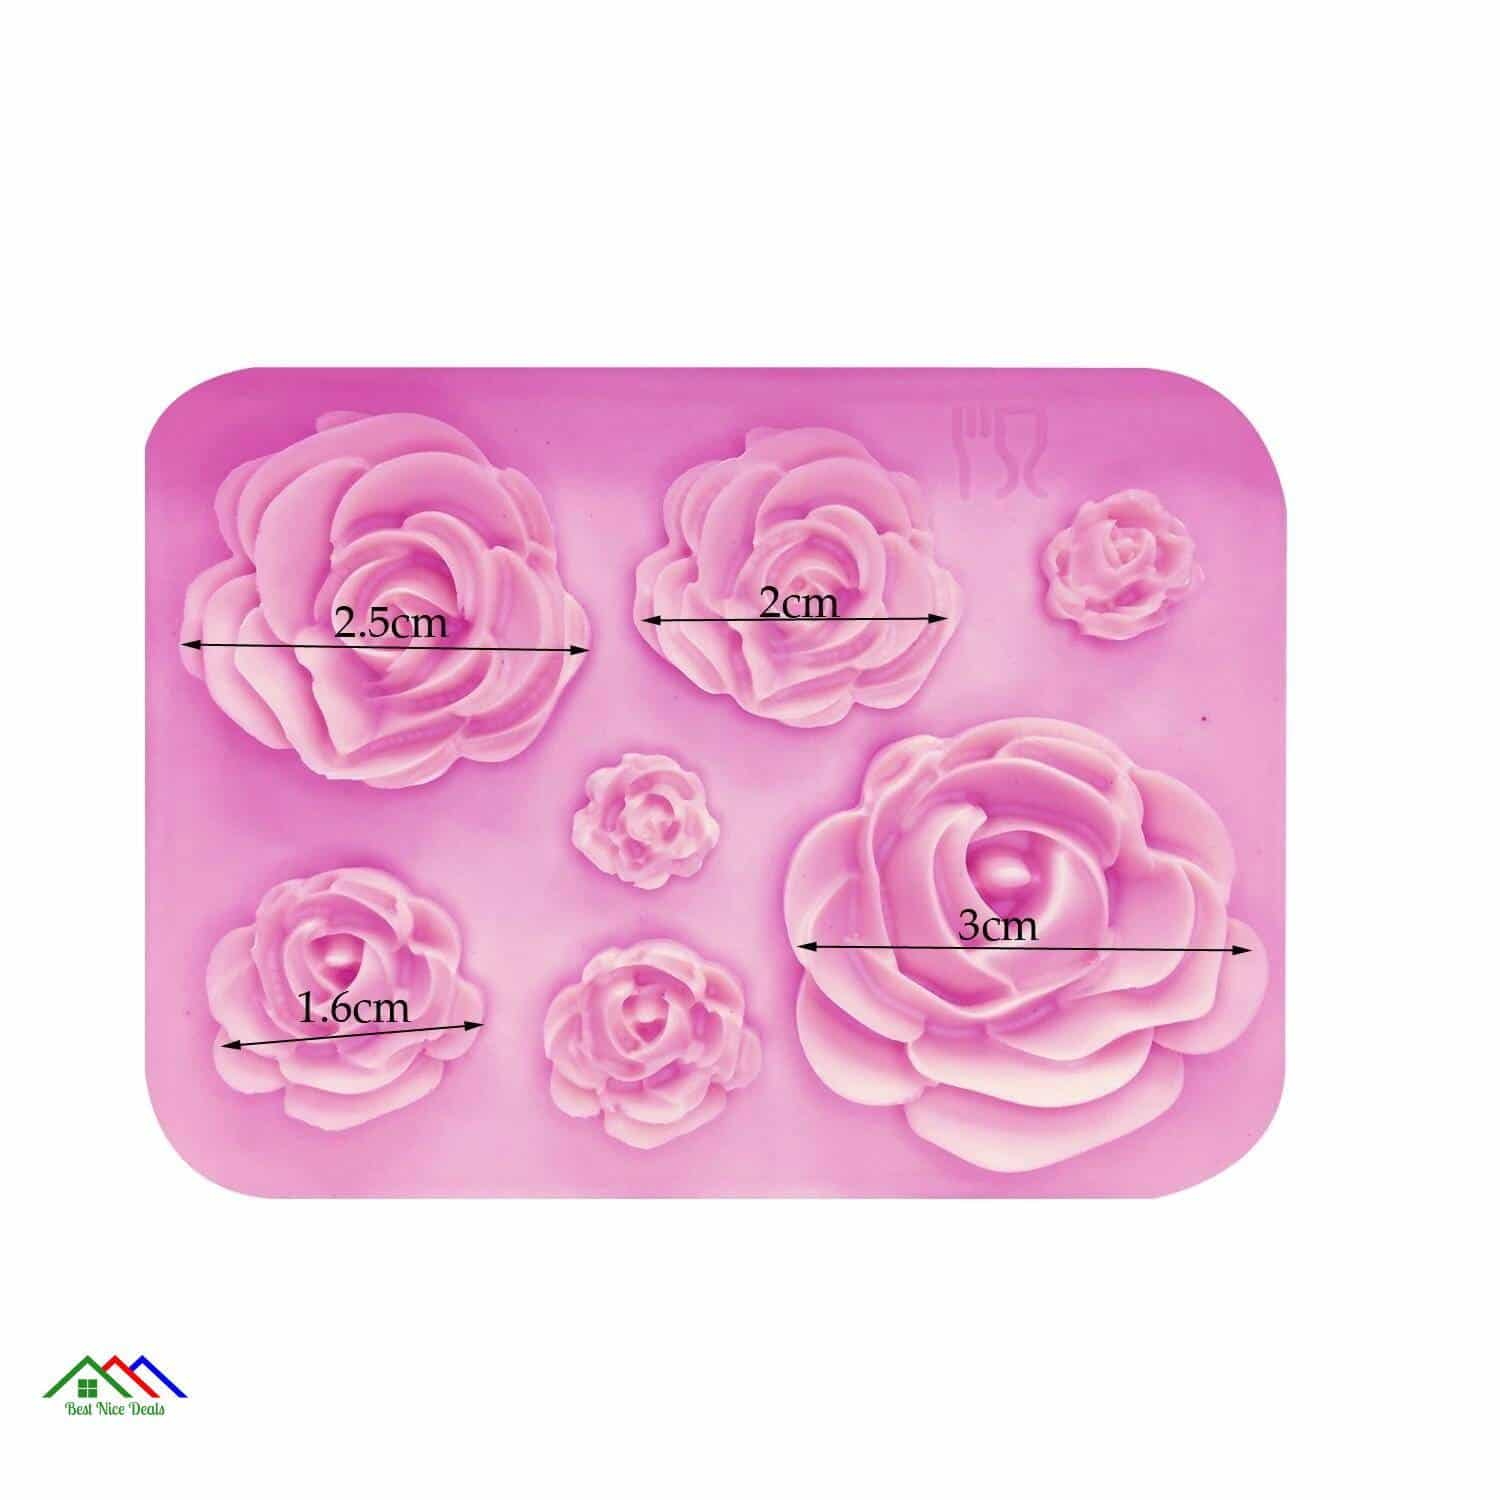 Rose Flower Petal Silicone Garden Roses Top Selling Products New Arrivals Kitchen Silicone Molds